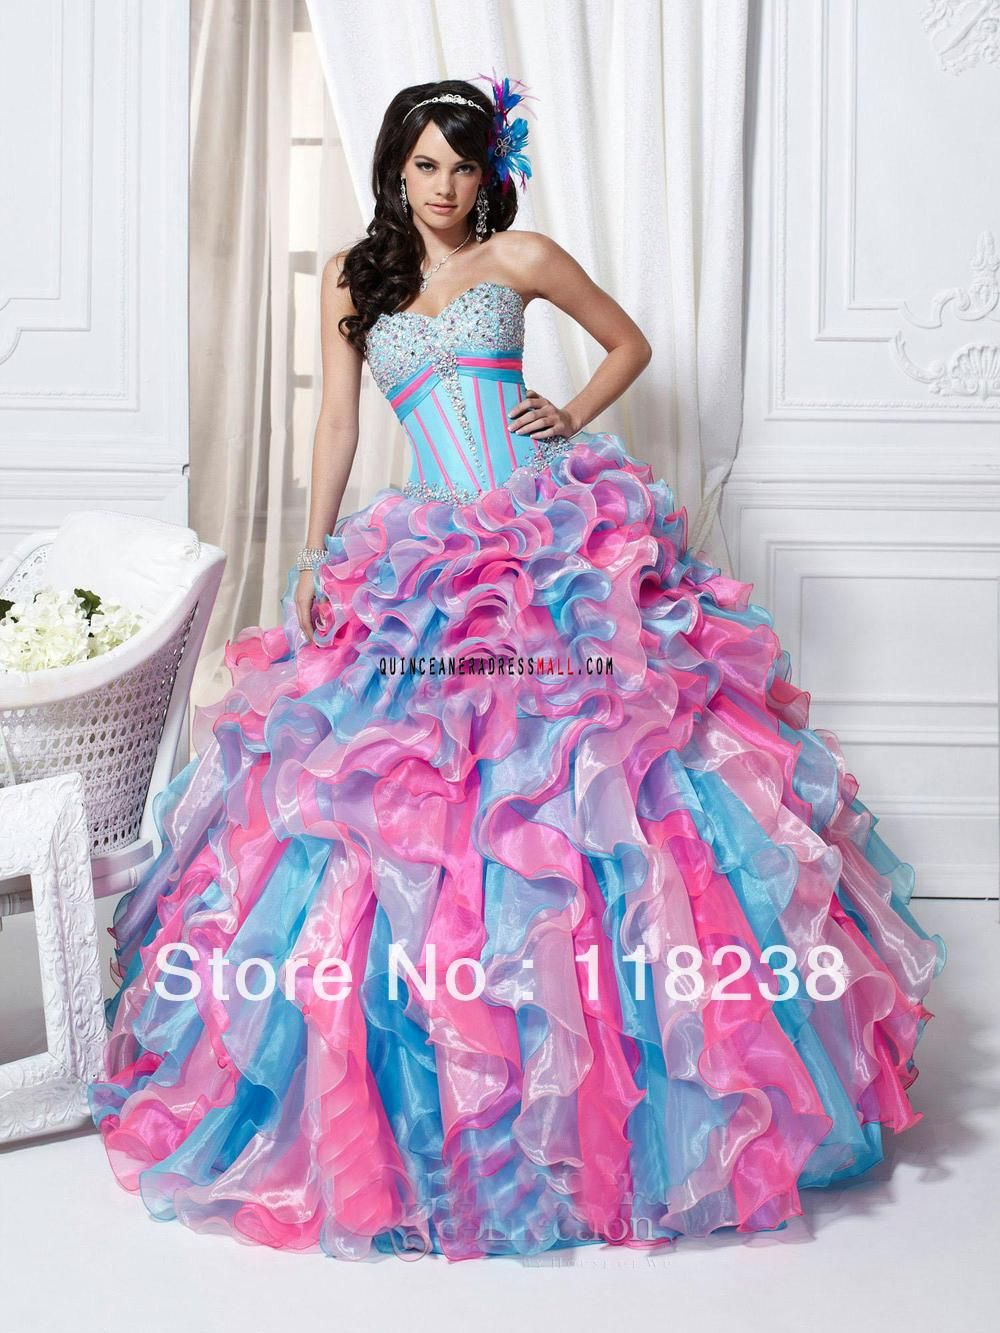 sweet 15 poses | 2013 Beautiful sweetheart neck beading ball gown ...